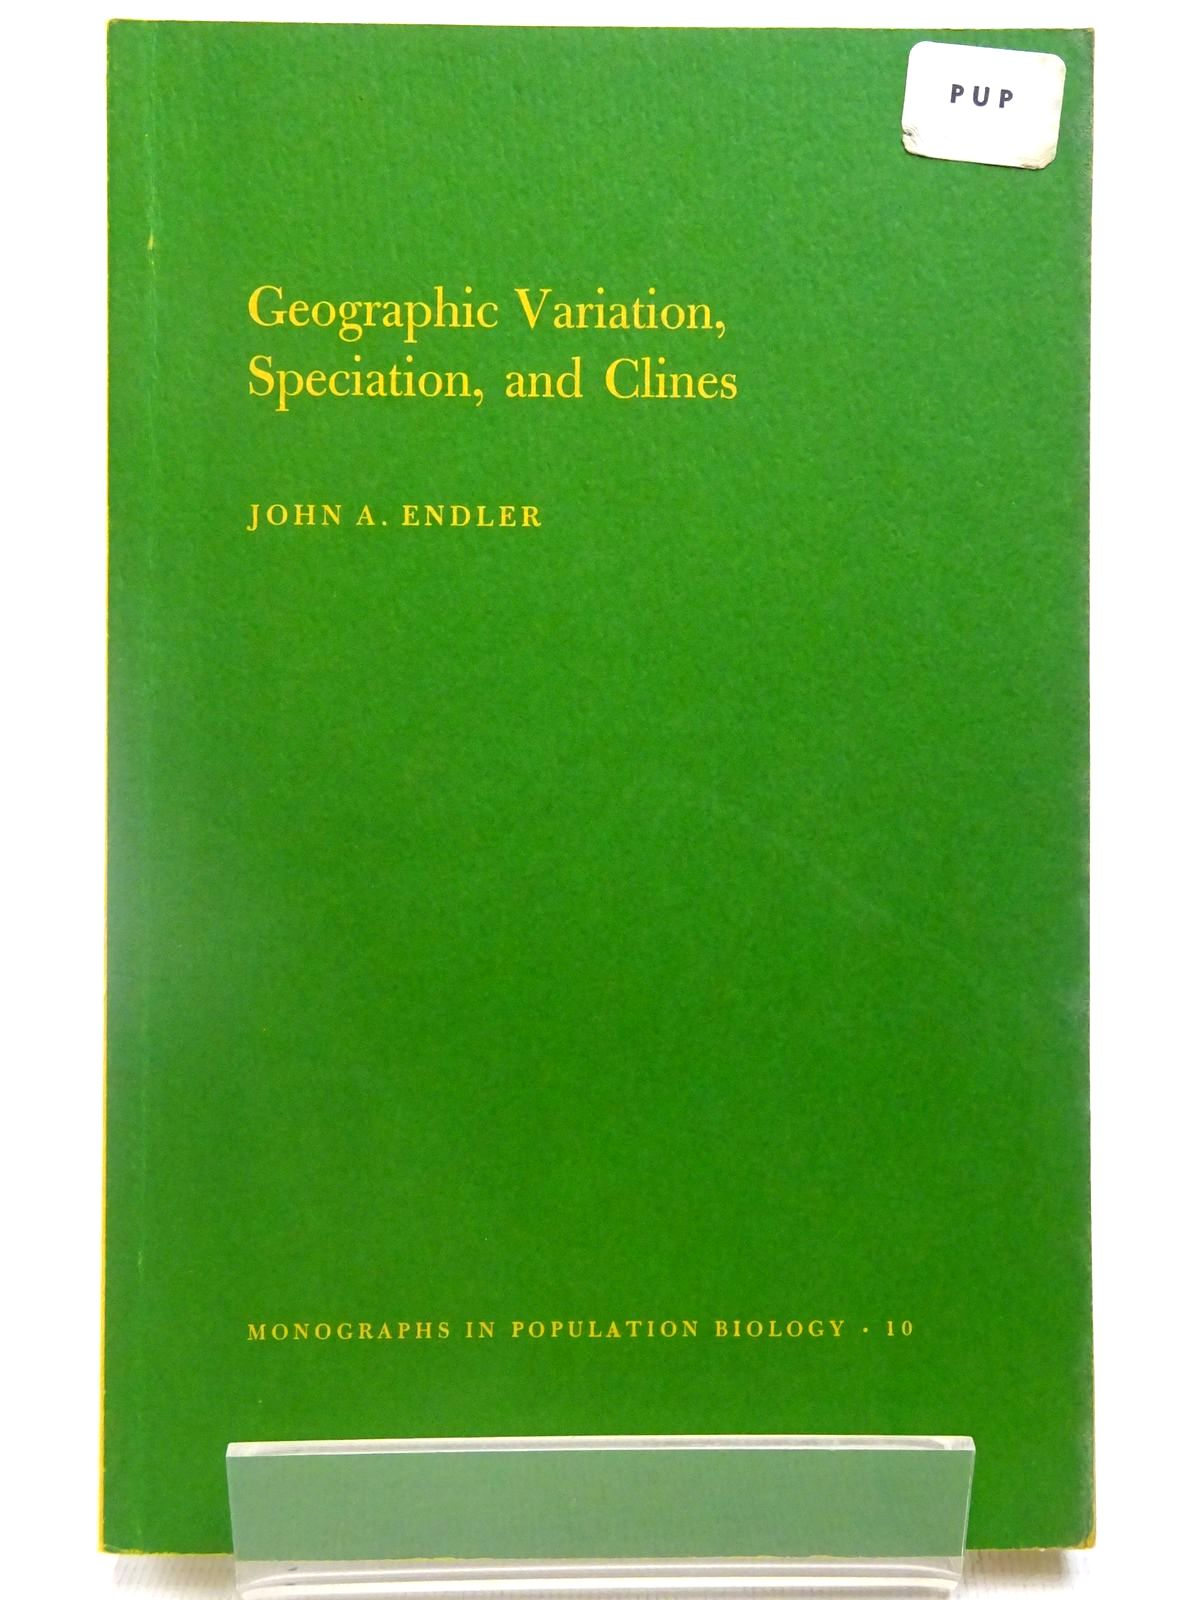 Photo of GEOGRAPHIC VARIATION, SPECIATION, AND CLINES written by Endler, John A. published by Princeton University Press (STOCK CODE: 2127994)  for sale by Stella & Rose's Books